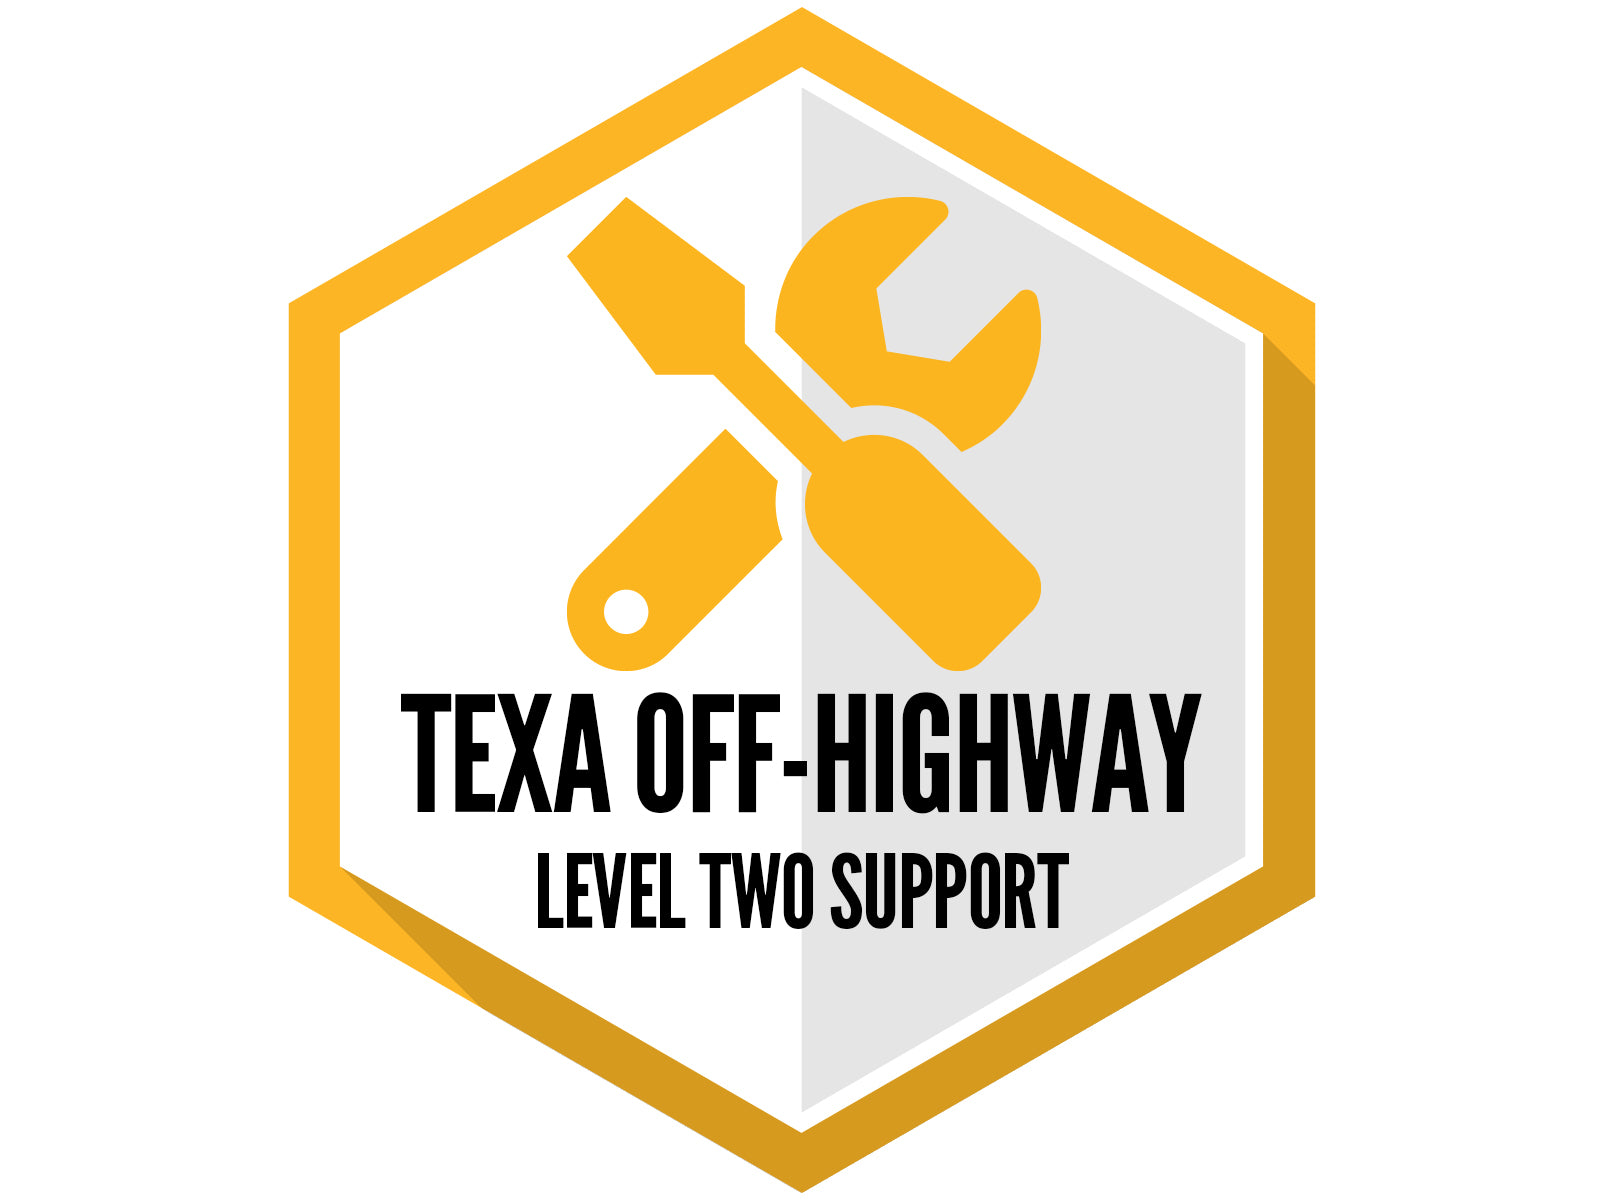 TEXA Off Highway Support - Level 2 (Standard)